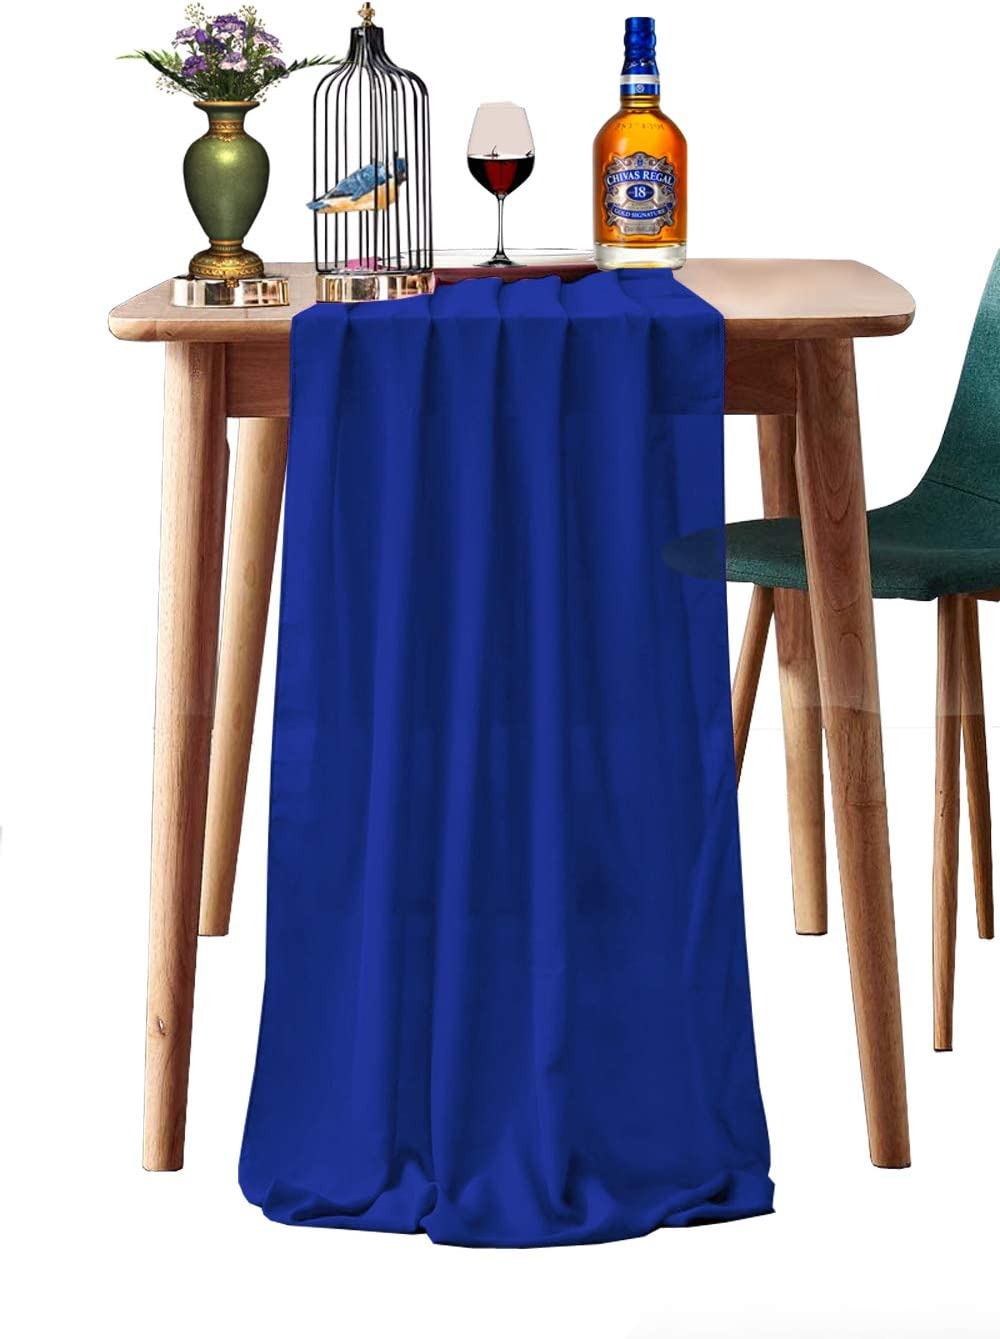 mds Pack of 5 Max 89% OFF Wedding Department store 27 x 120 Table Runner Wed inch for Chiffon